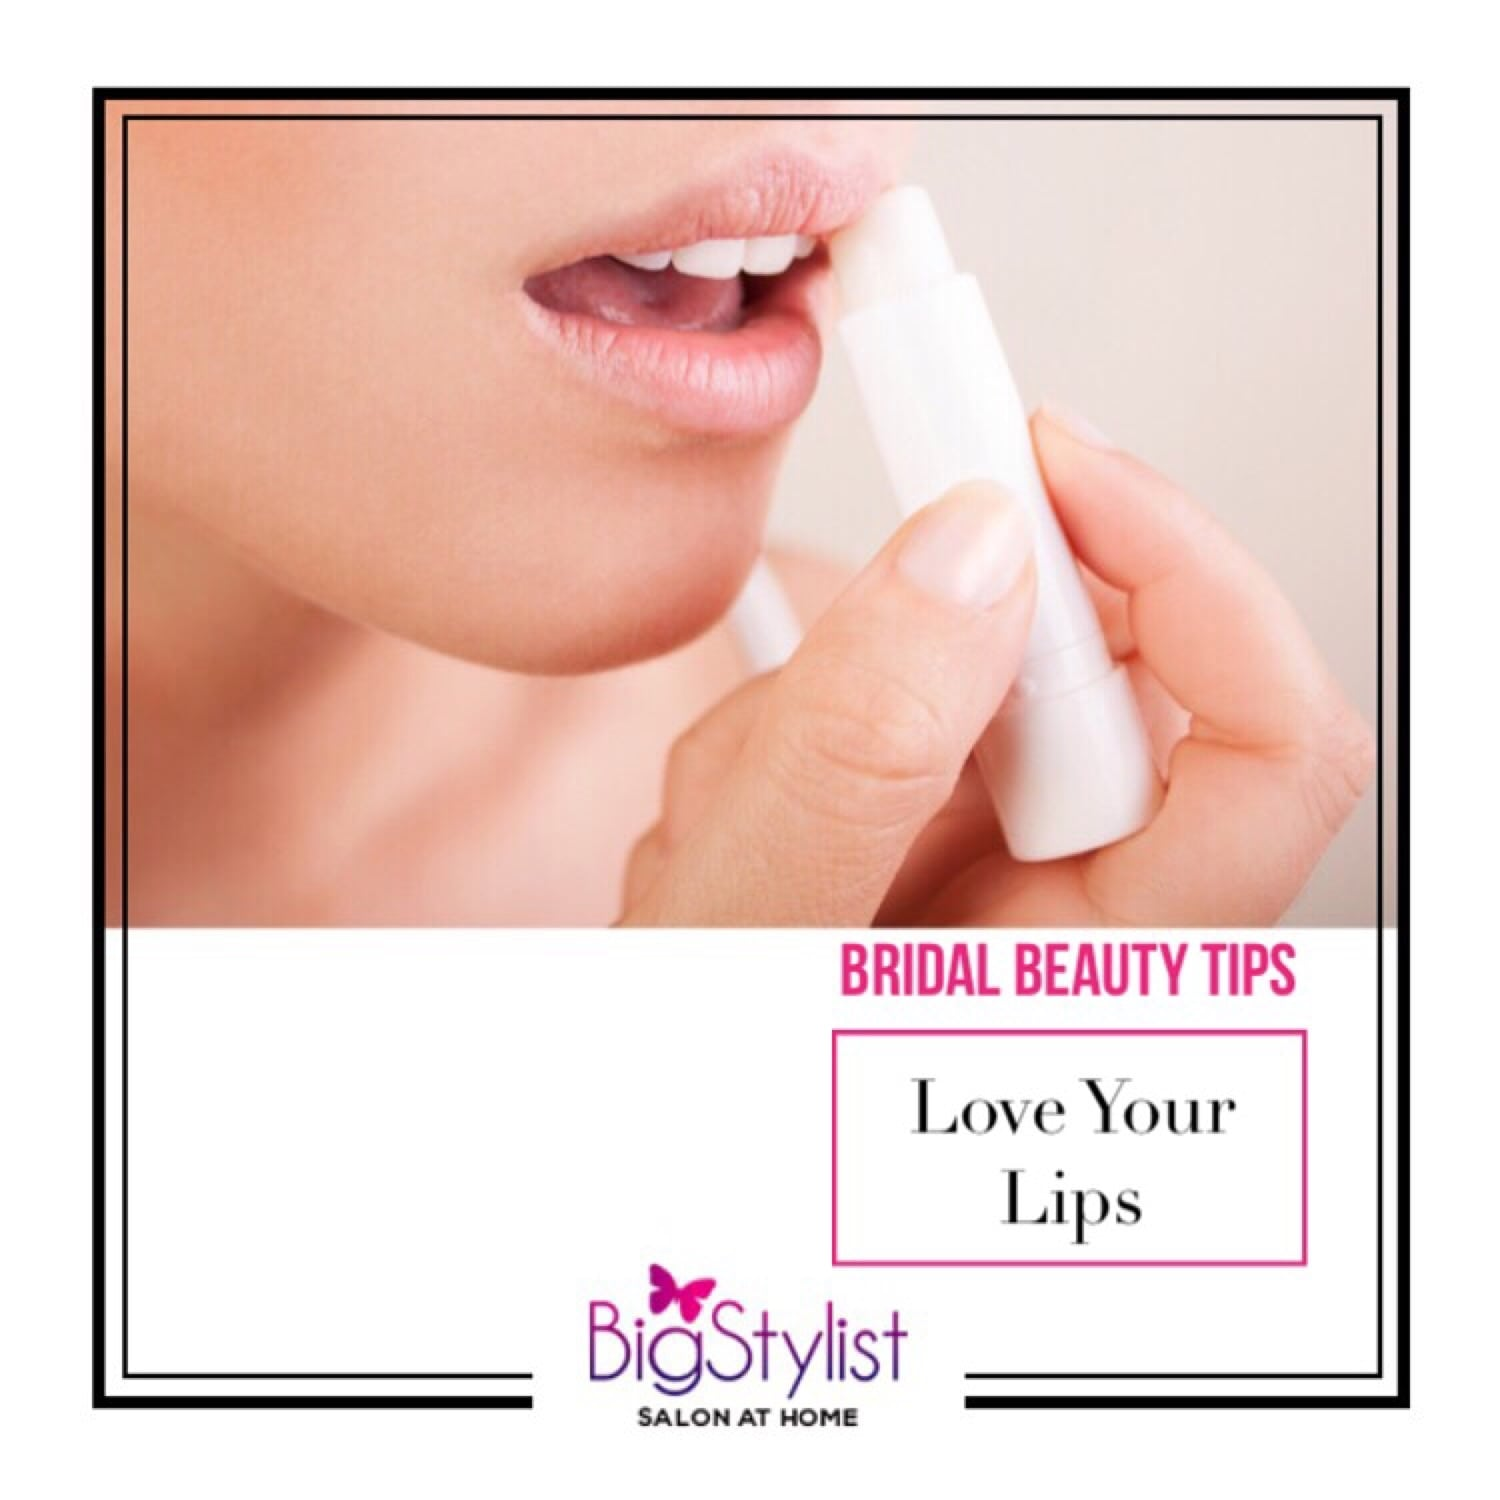 If you have perpetually chapped and dry lips, it's important to give them the love and care that they deserve. Exfoliate your lips by using olive oil and white sugar crystals! #bridalbeautytips #beautytips #lipcare #drylips #exfolite #lips #beauty #bridestobe #bridal #stayhomebeautiful #BigStylist